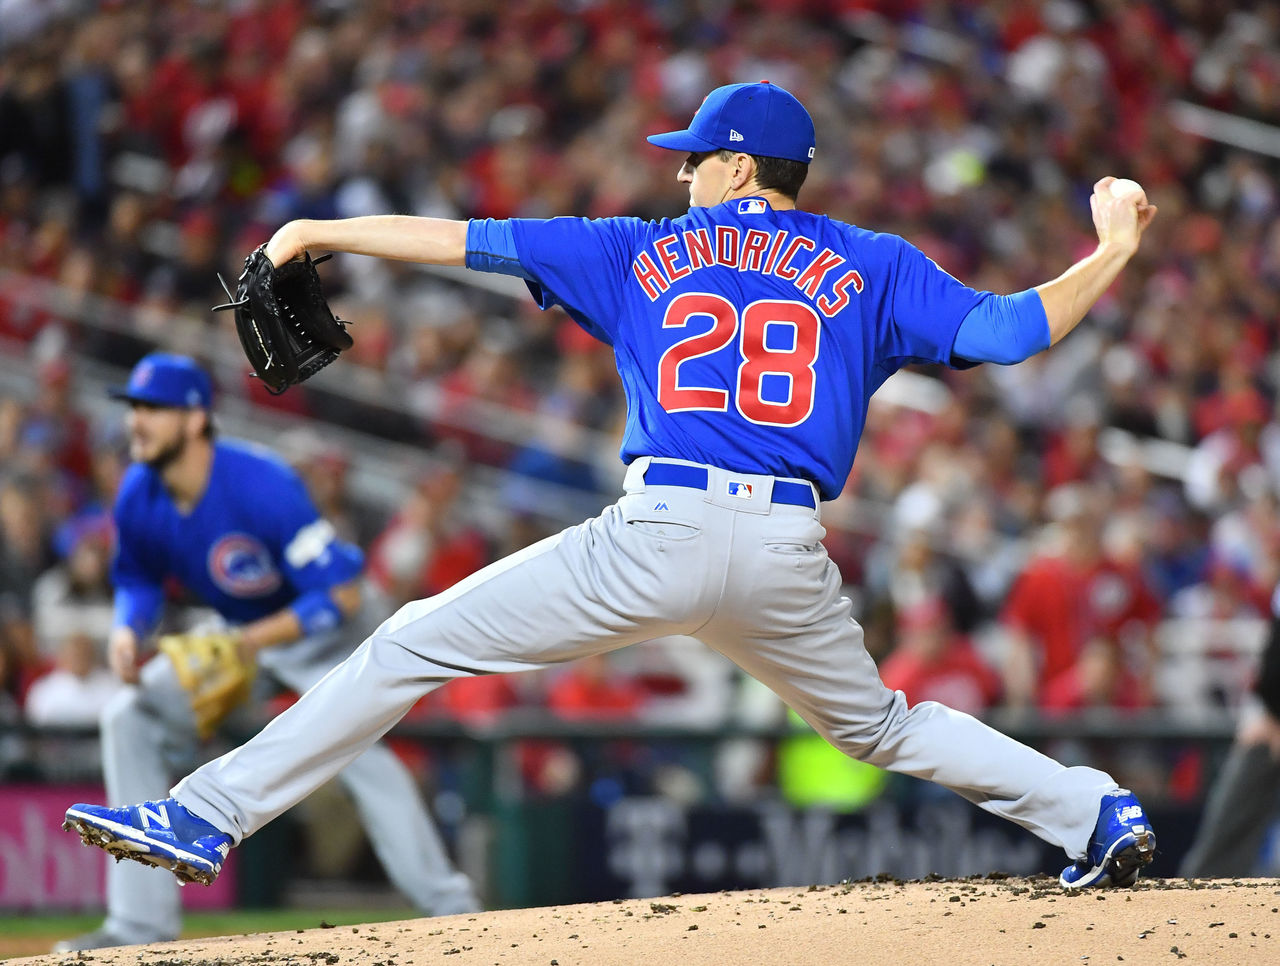 Cropped 2017 10 13t004719z 247474825 nocid rtrmadp 3 mlb nlds chicago cubs at washington nationals